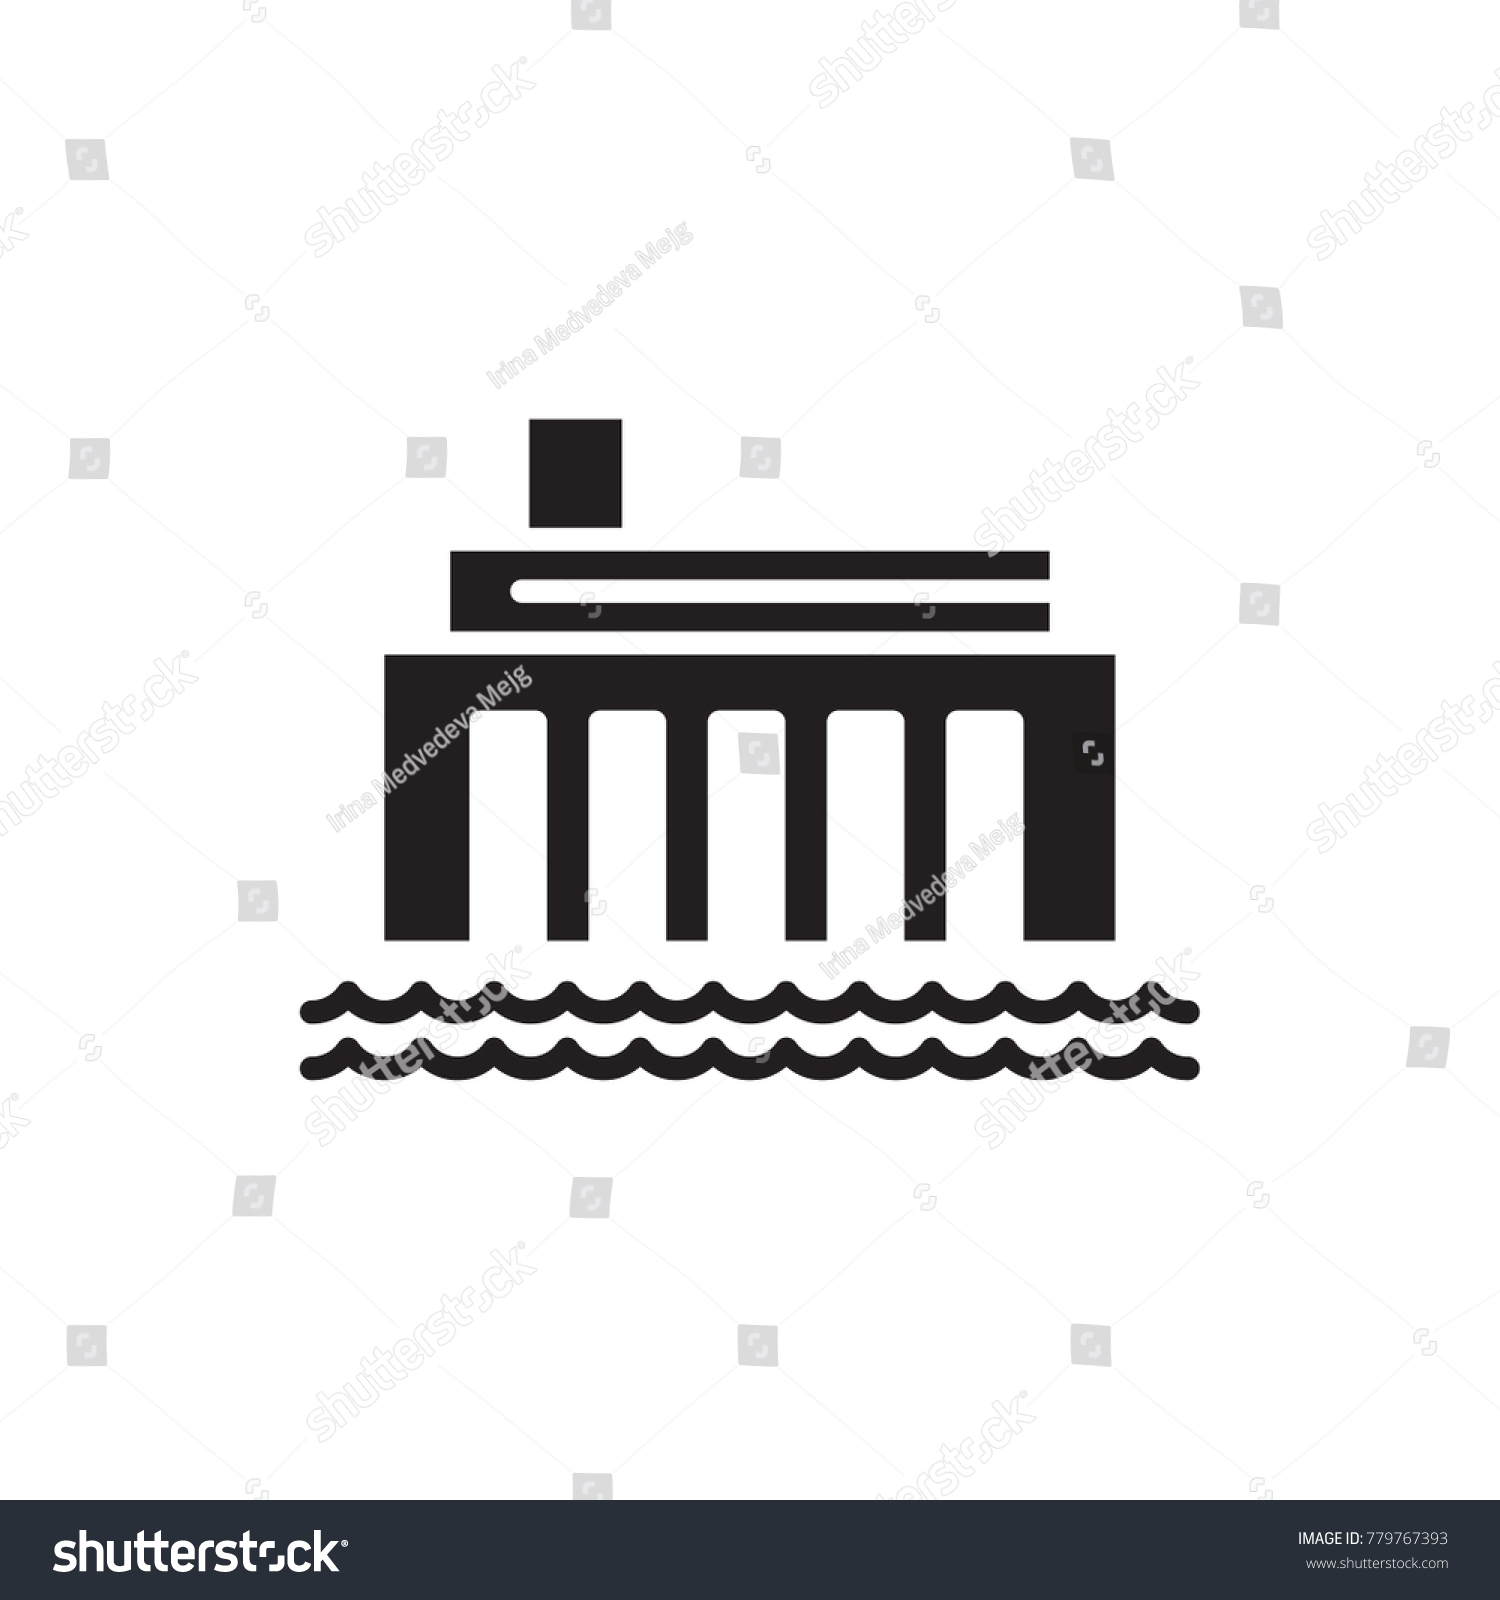 Hydro Power Plant Vector Icon Stock Royalty Free 779767393 Line Diagram